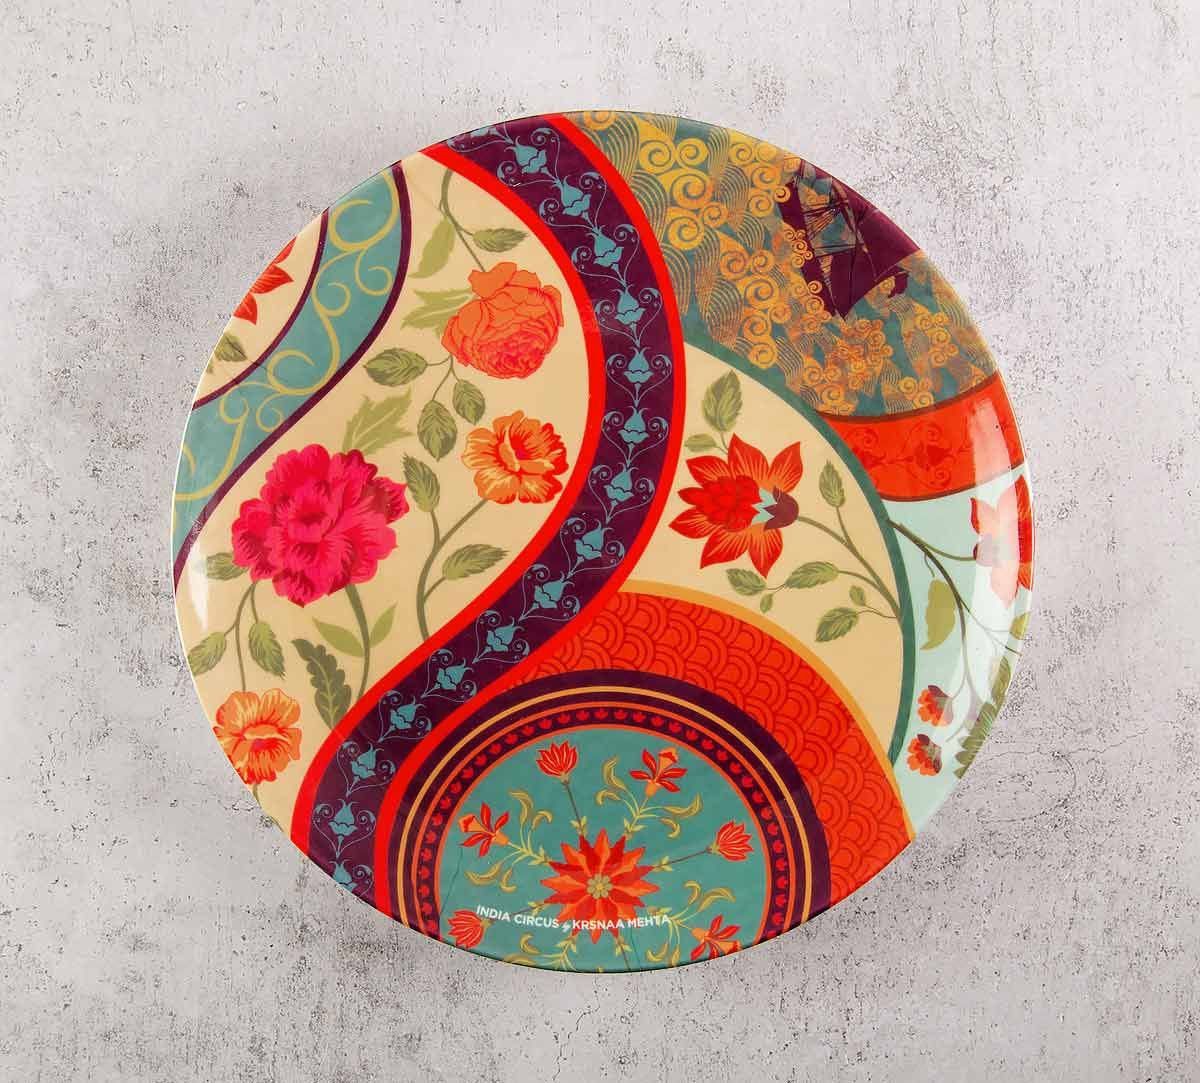 India Circus Floral Embroidery 8 inch Decorative and Snacks Platter